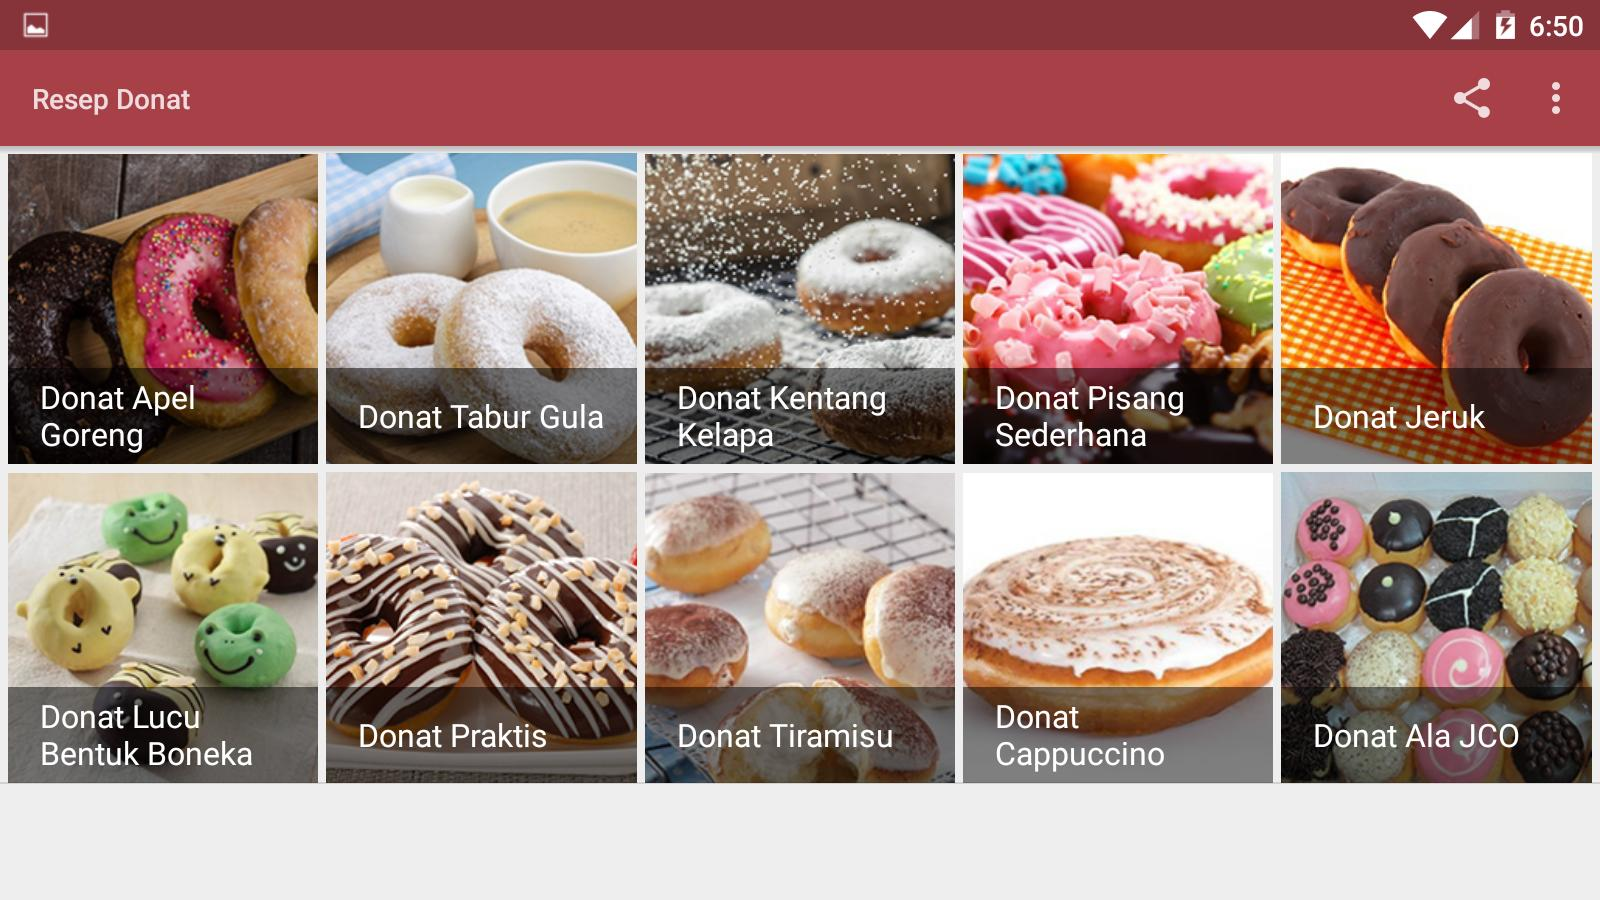 Resep Donat For Android Apk Download